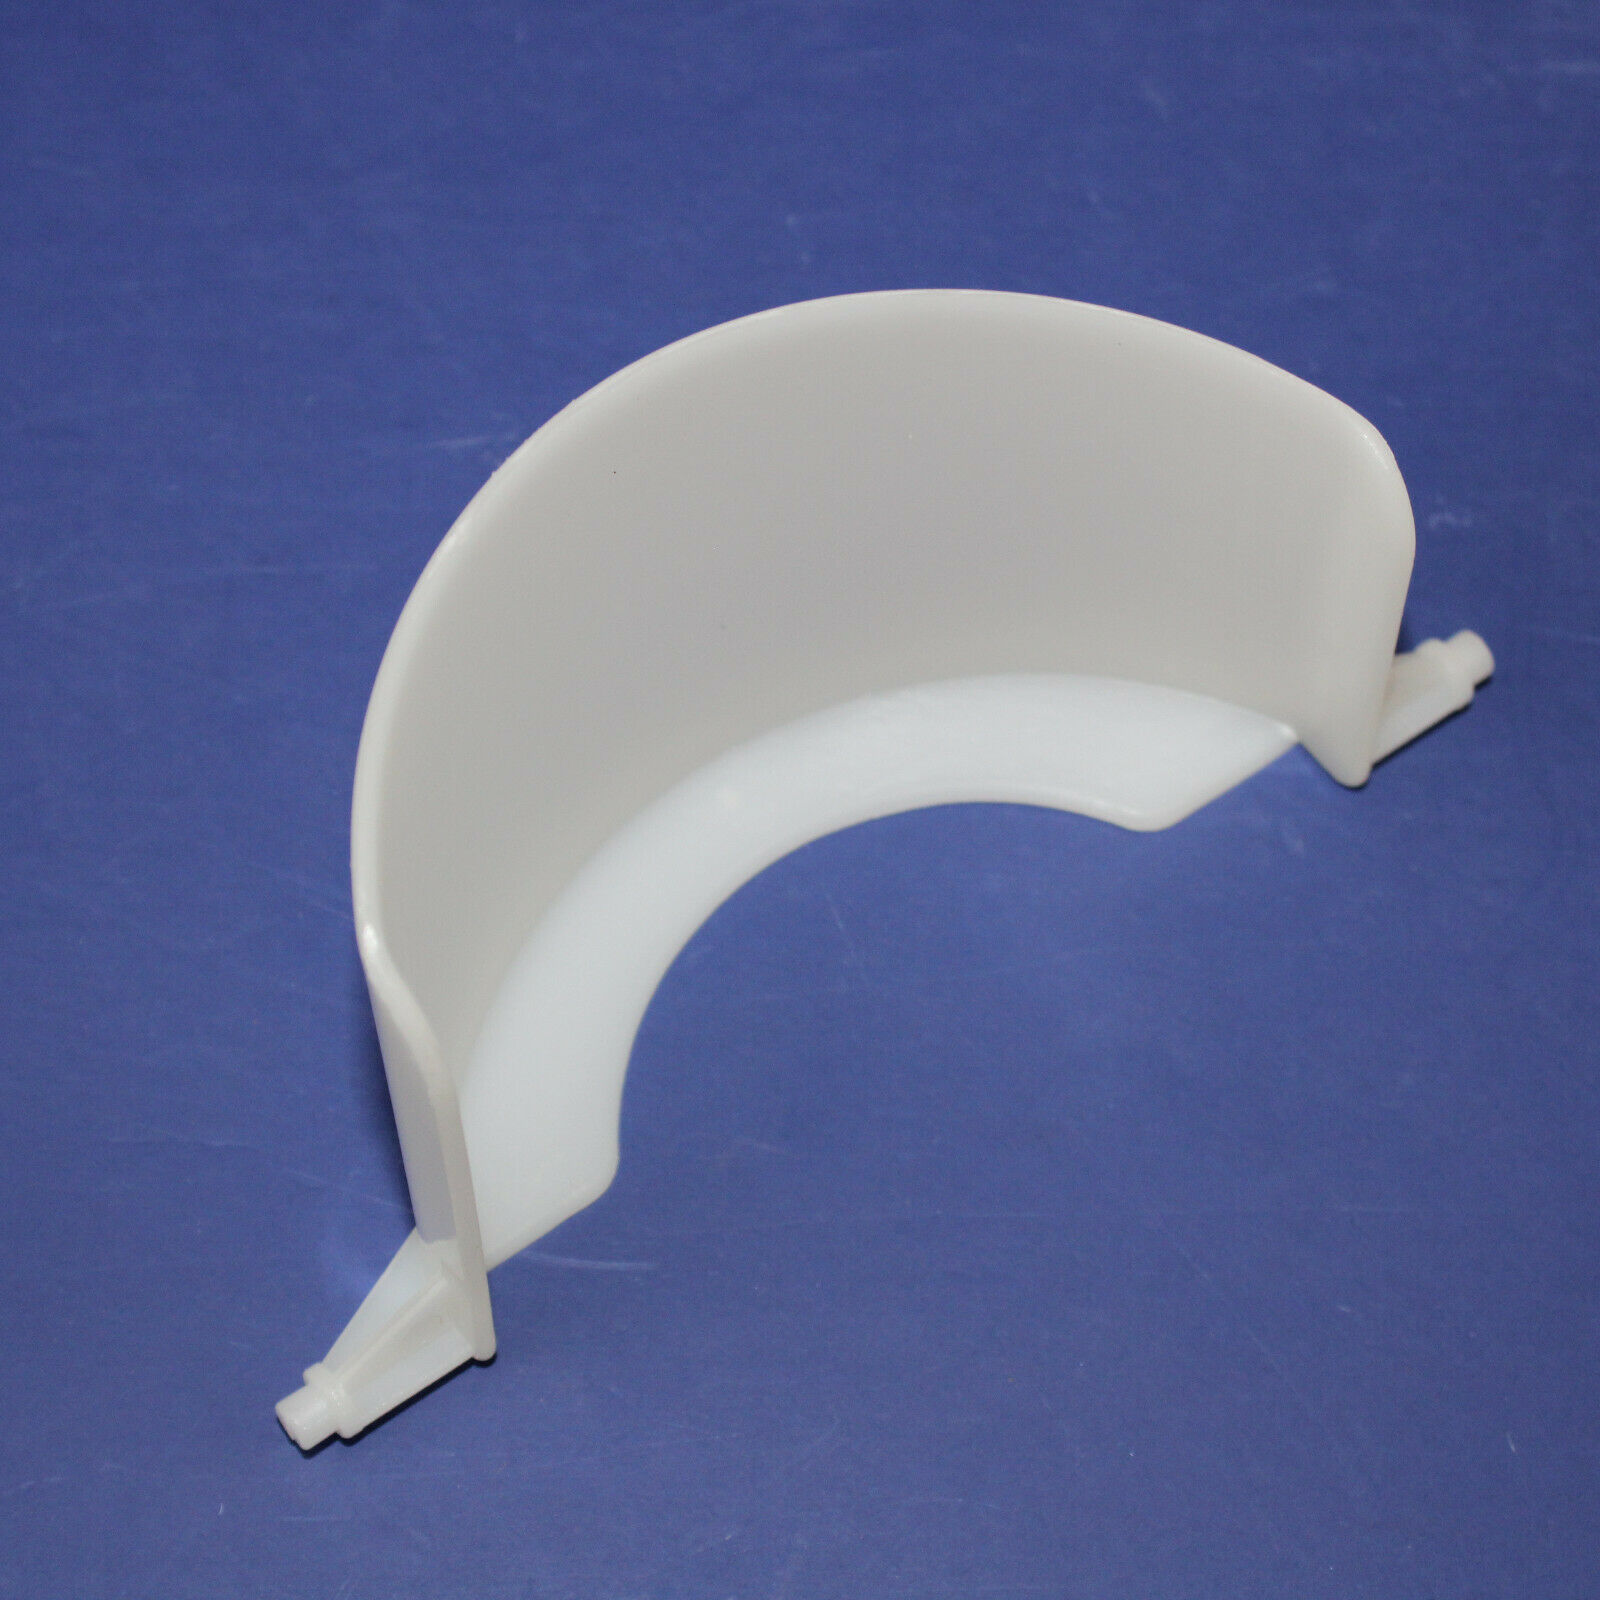 Primary image for General Electric Washer : Pump Drain Channel Cup (WH01X10387) {P5094}